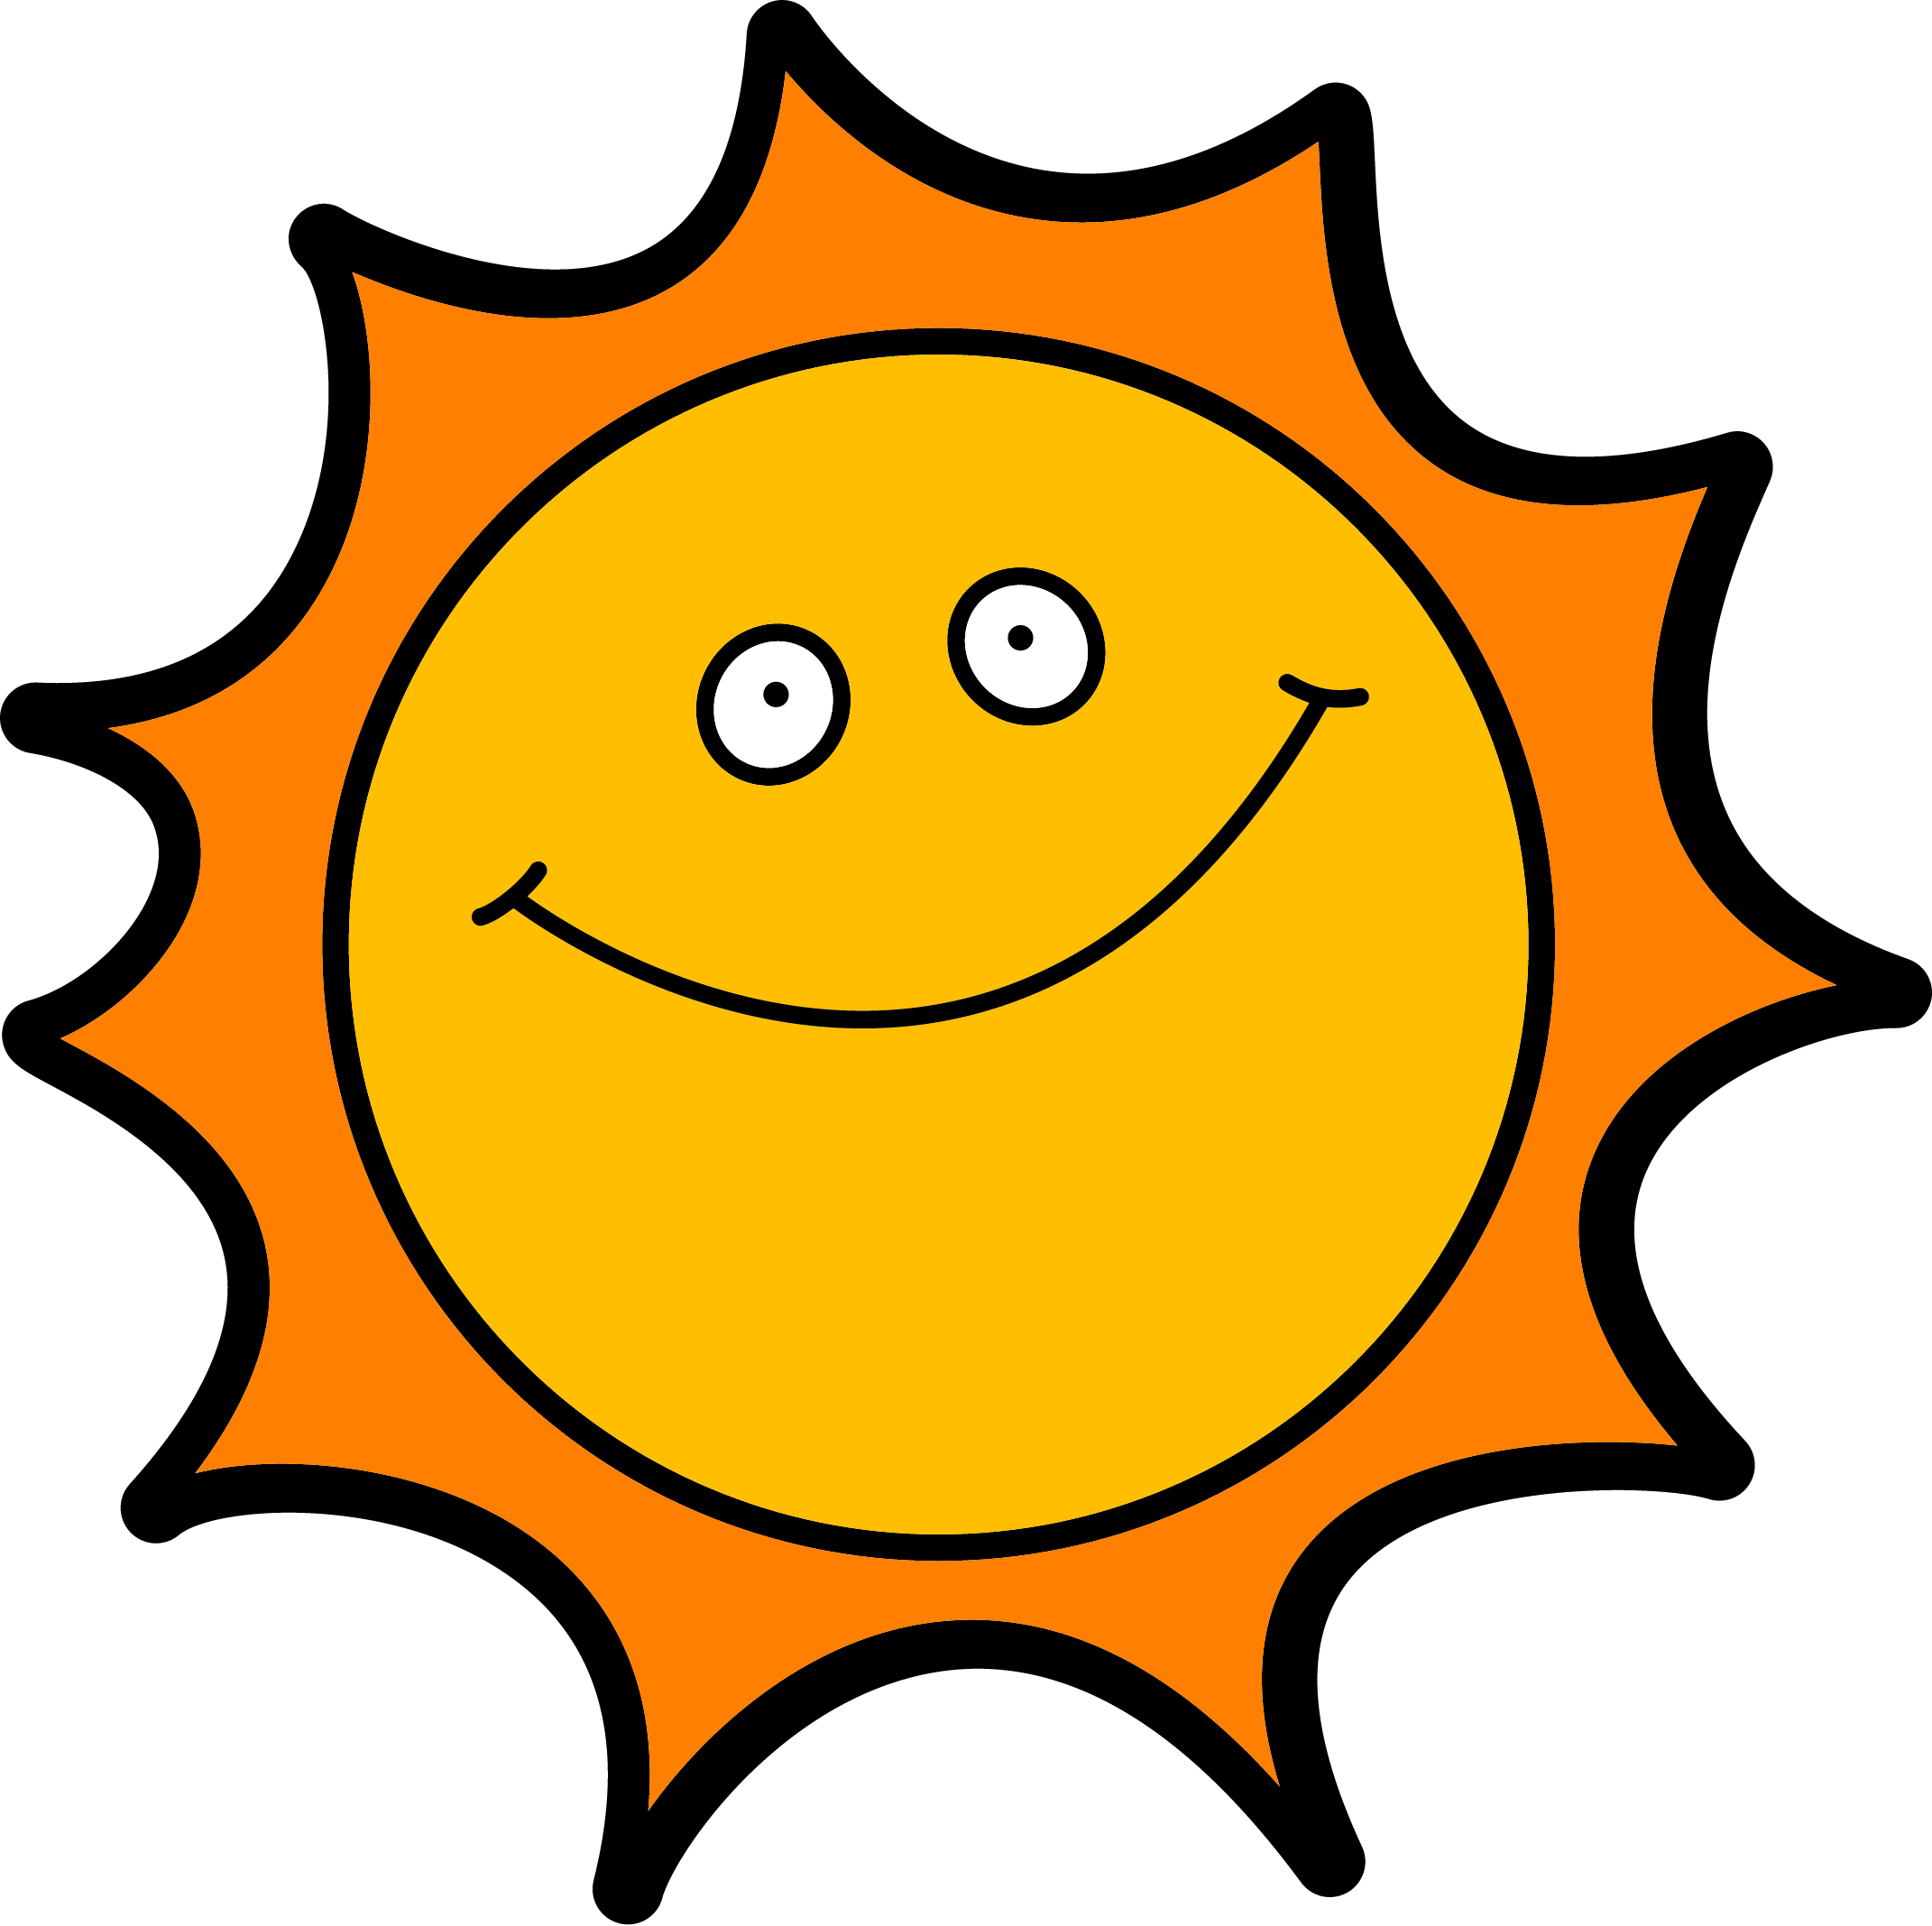 Enjoying the sun clip art clipart free download.